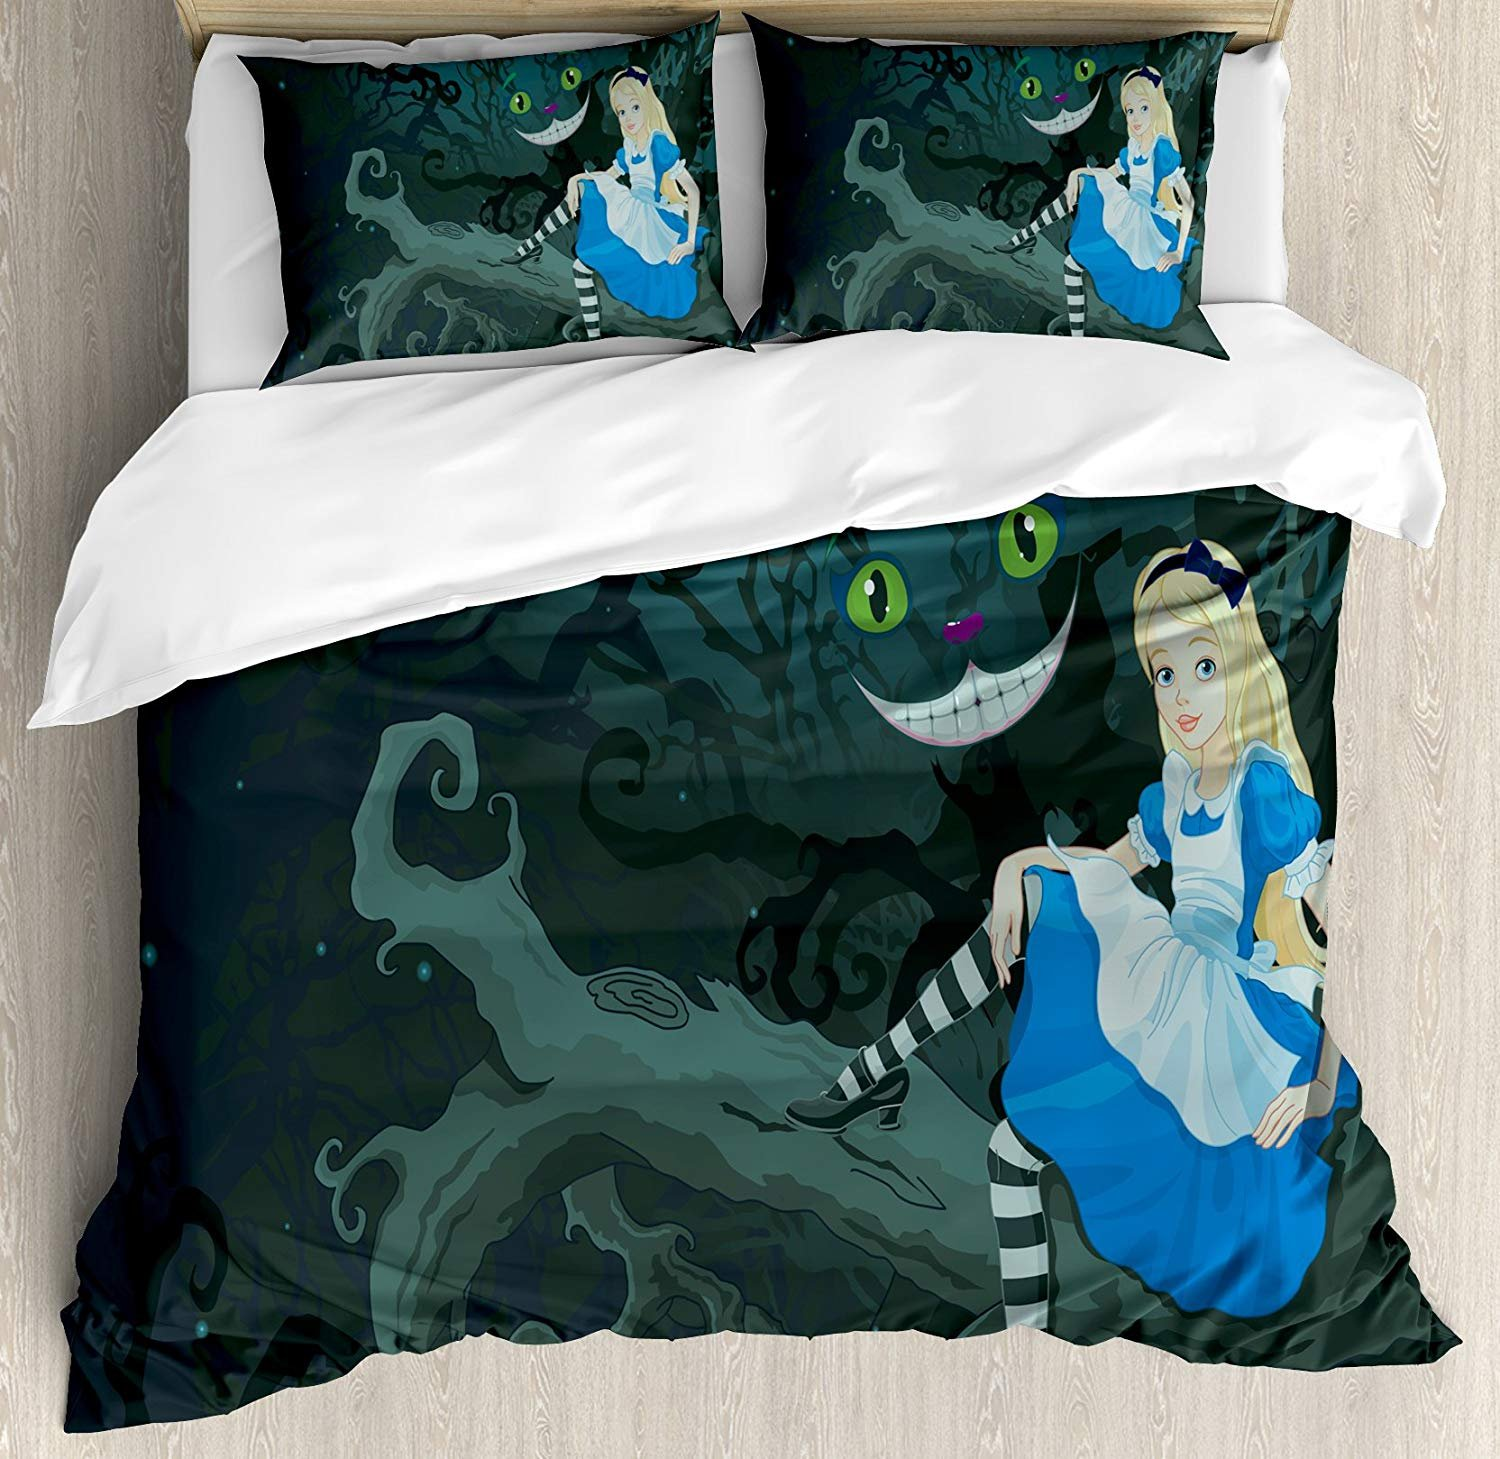 Alice in Wonderland Duvet Cover Set, 4pcs Twin Bedding Sets Soft Microfiber Bedspread Comforter Cover and Pillow Shams, Alice Sitting on Branch with Chescire Cat in Darkness Striped Cartoon Love